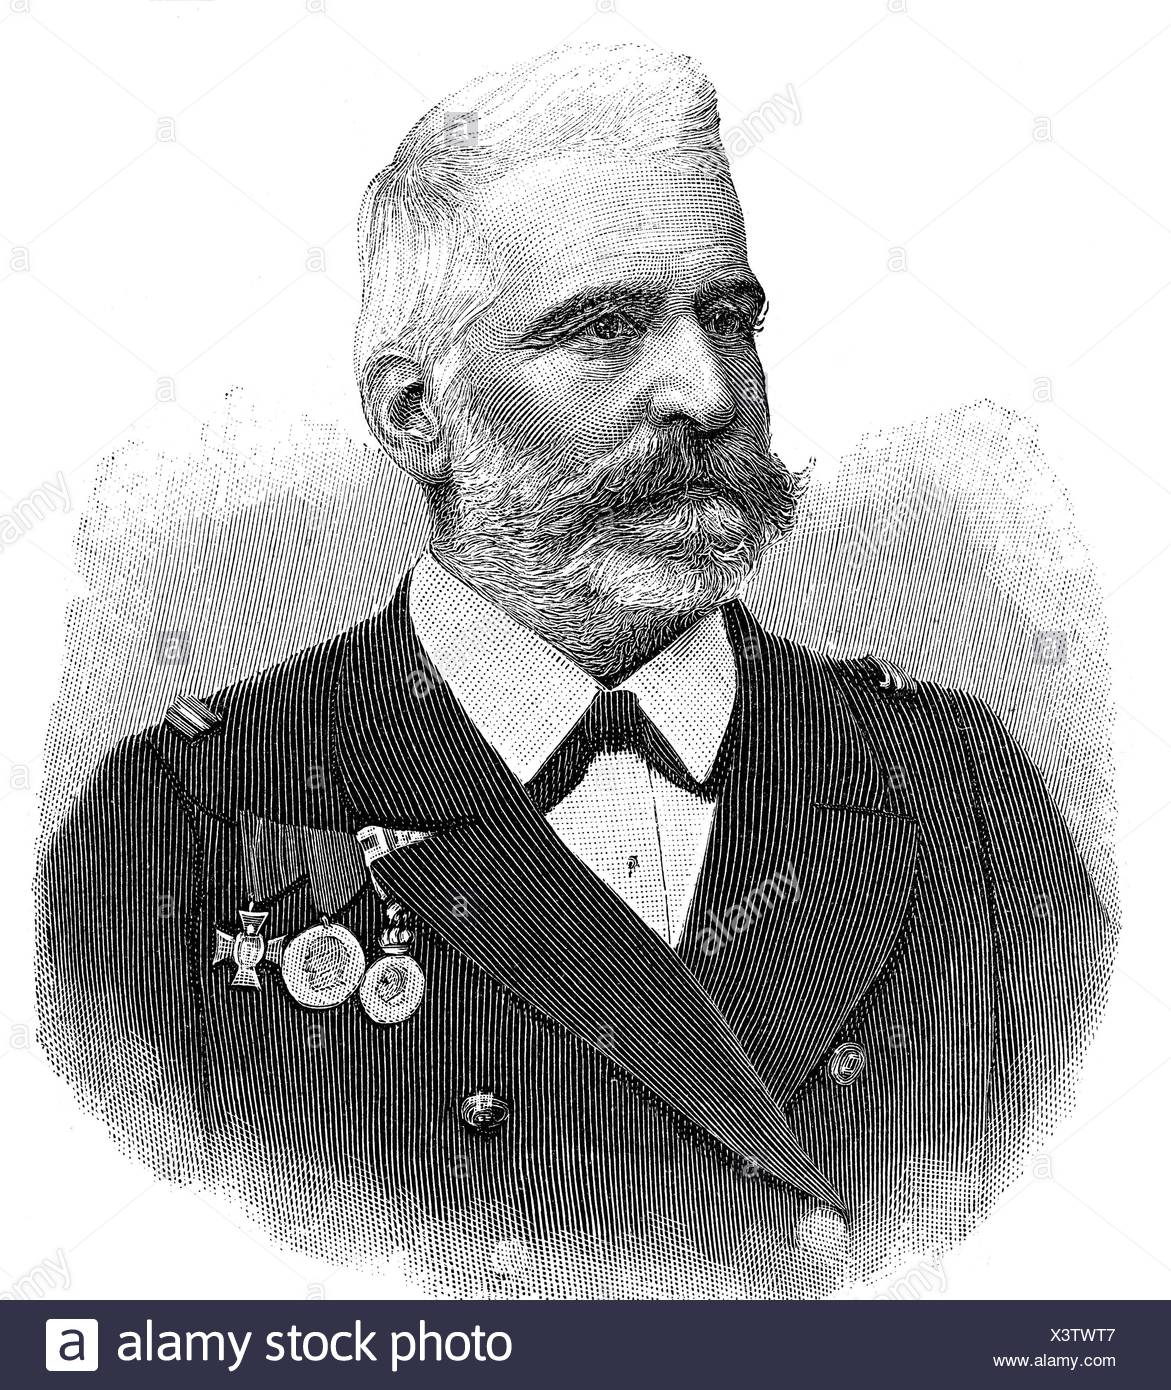 Montecuccoli, Rudolf count of, 22.2.1843 - 16.5.1922, Austro-Hungarian admiral, portrait, wood engraving, 1897, Additional-Rights-Clearances-NA - Stock Image